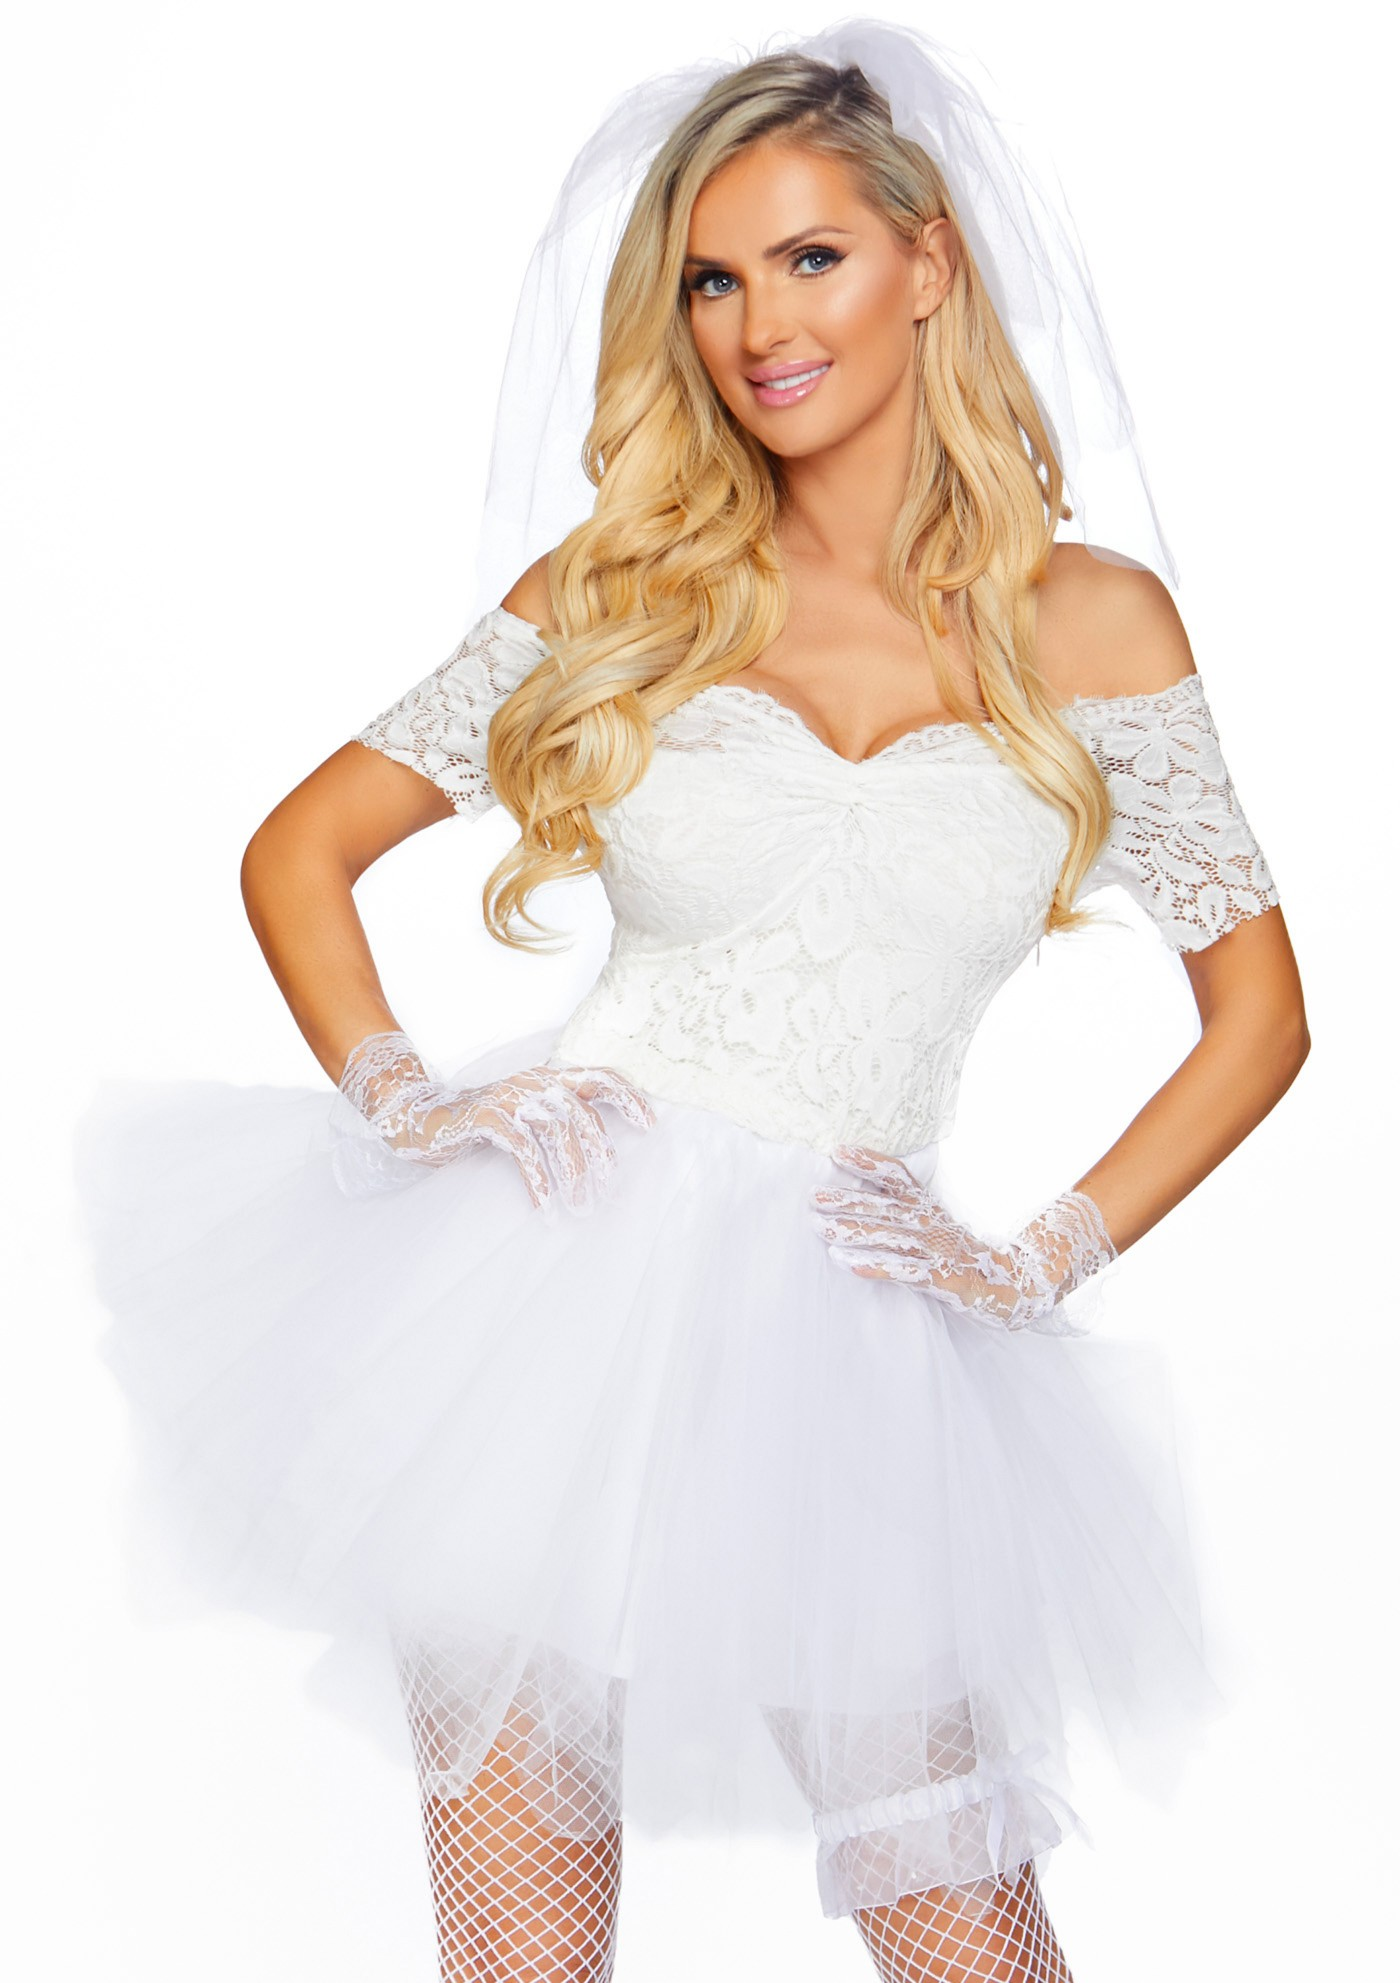 Costume Blushing Bride - Leg Avenue